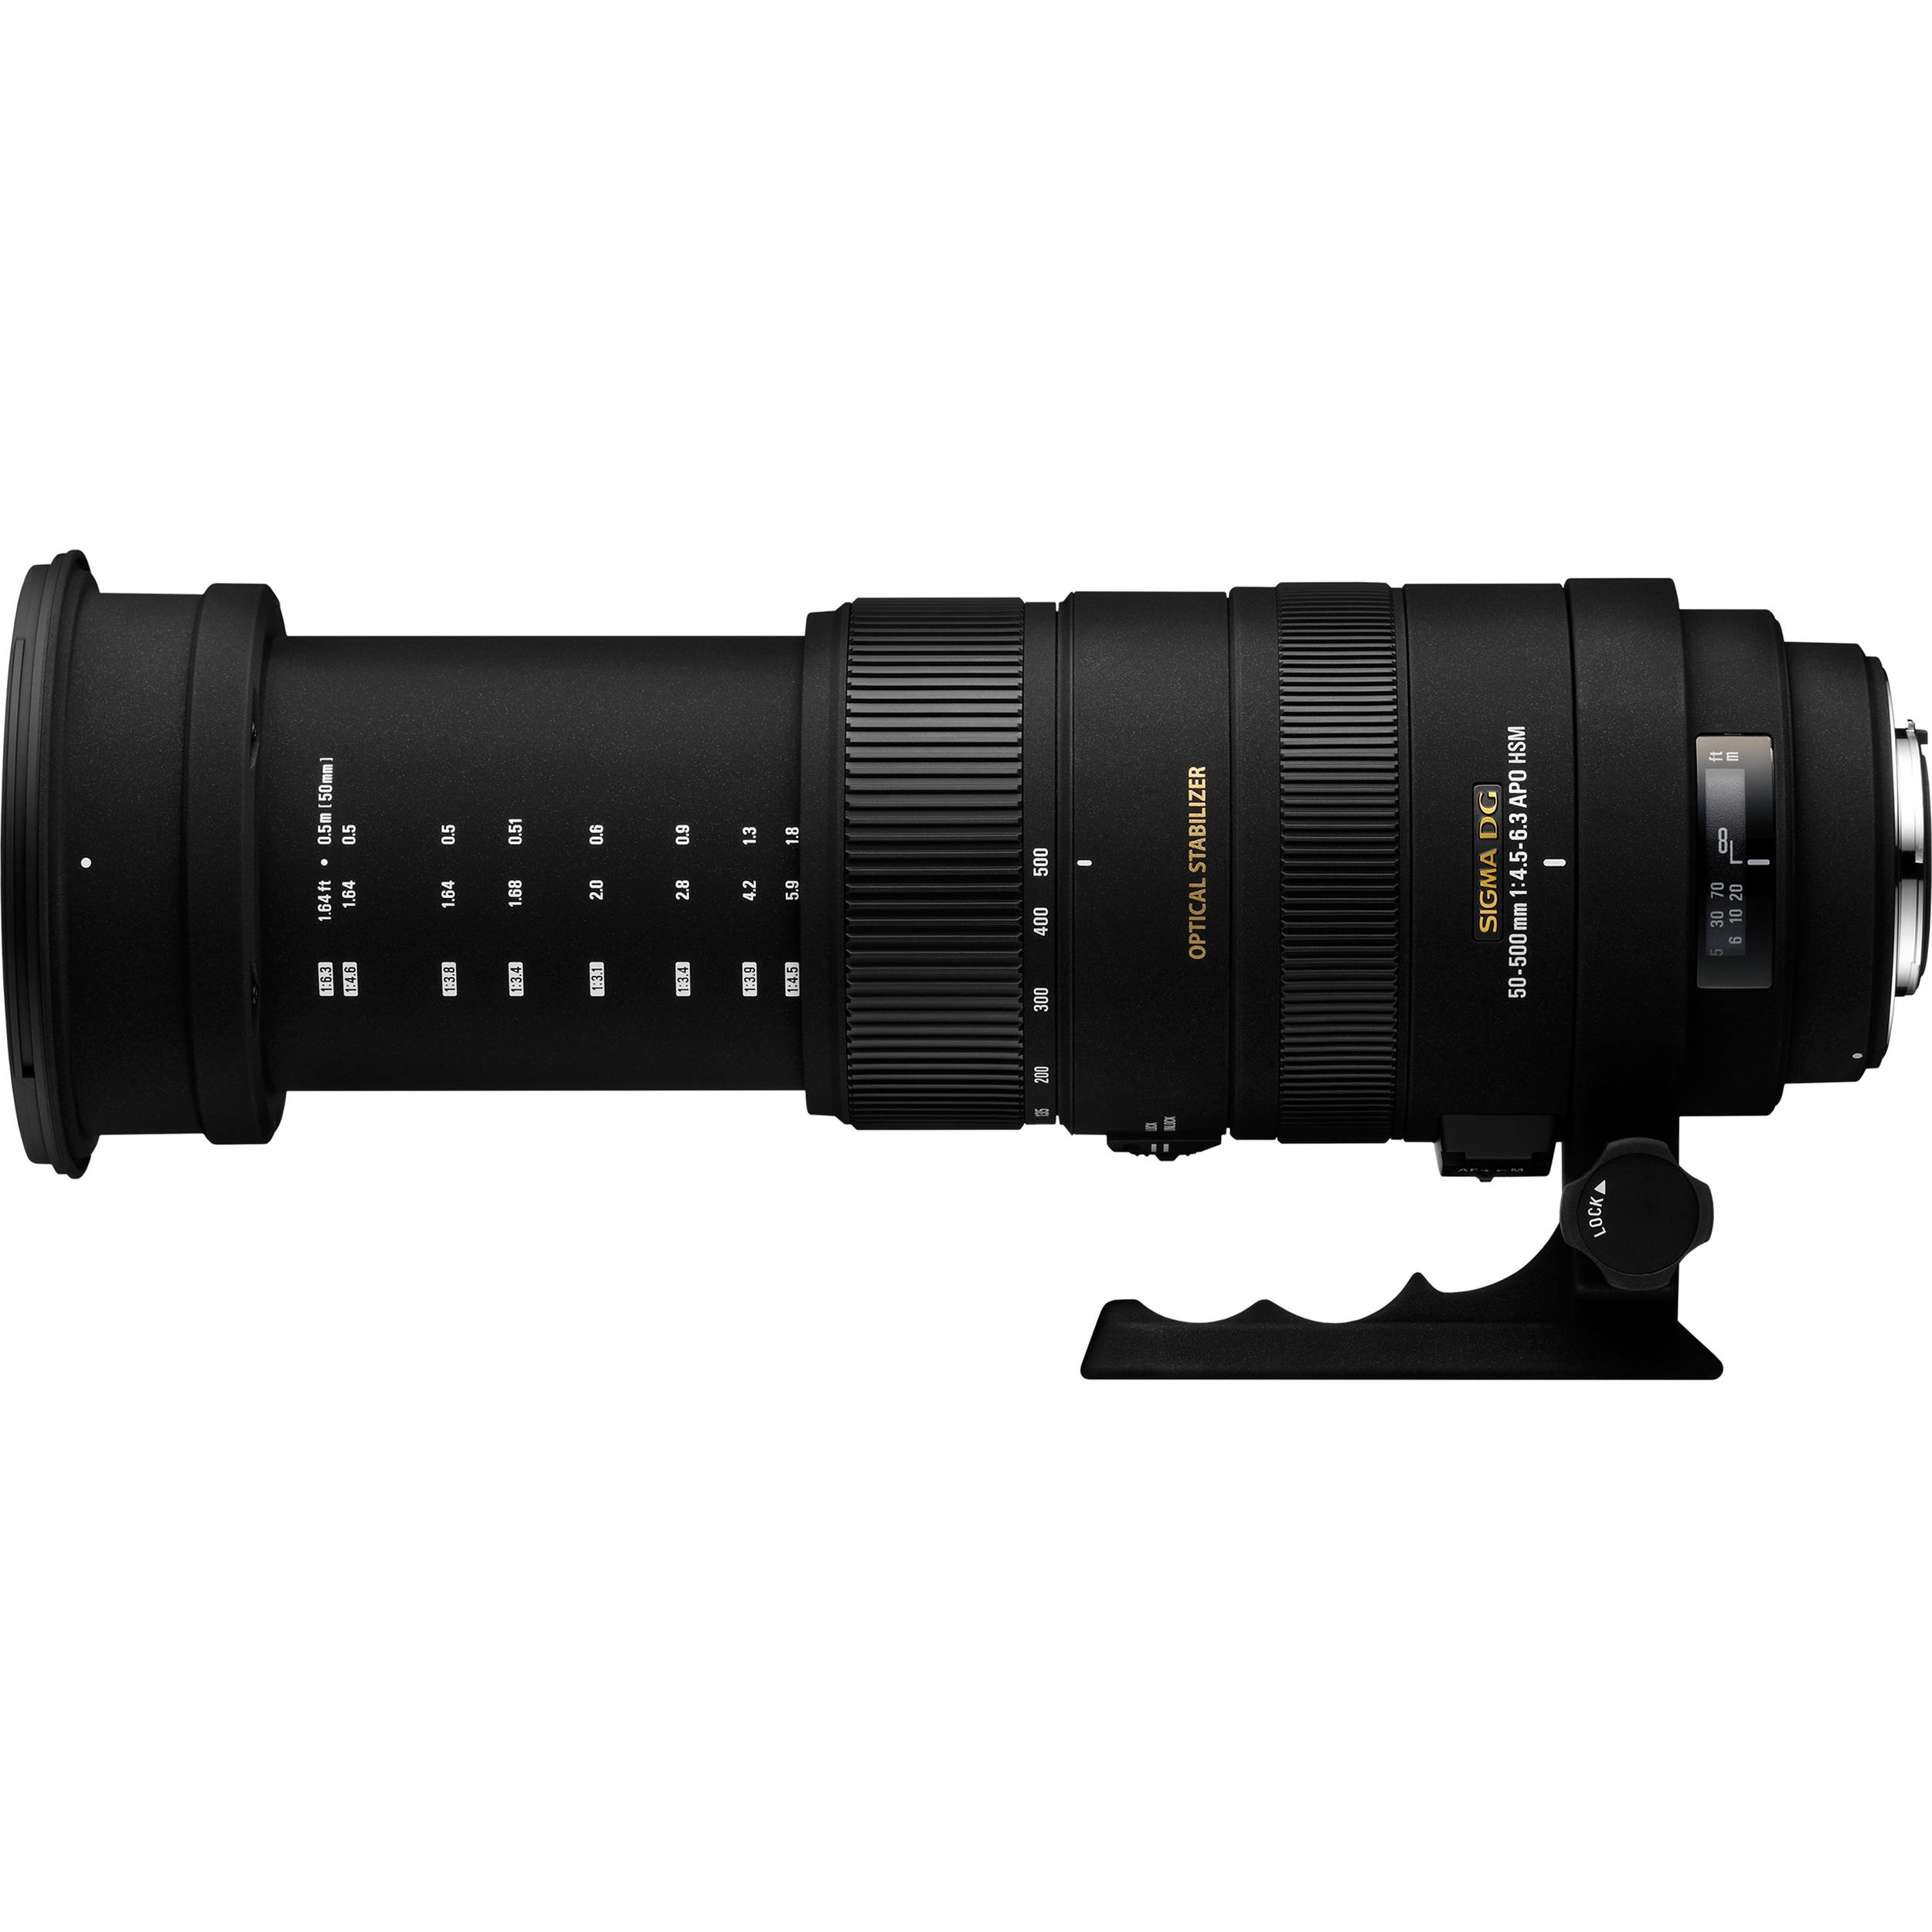 sigma 50 500mm f 4 5 6 3 dg os hsm apo lens for sigma. Black Bedroom Furniture Sets. Home Design Ideas